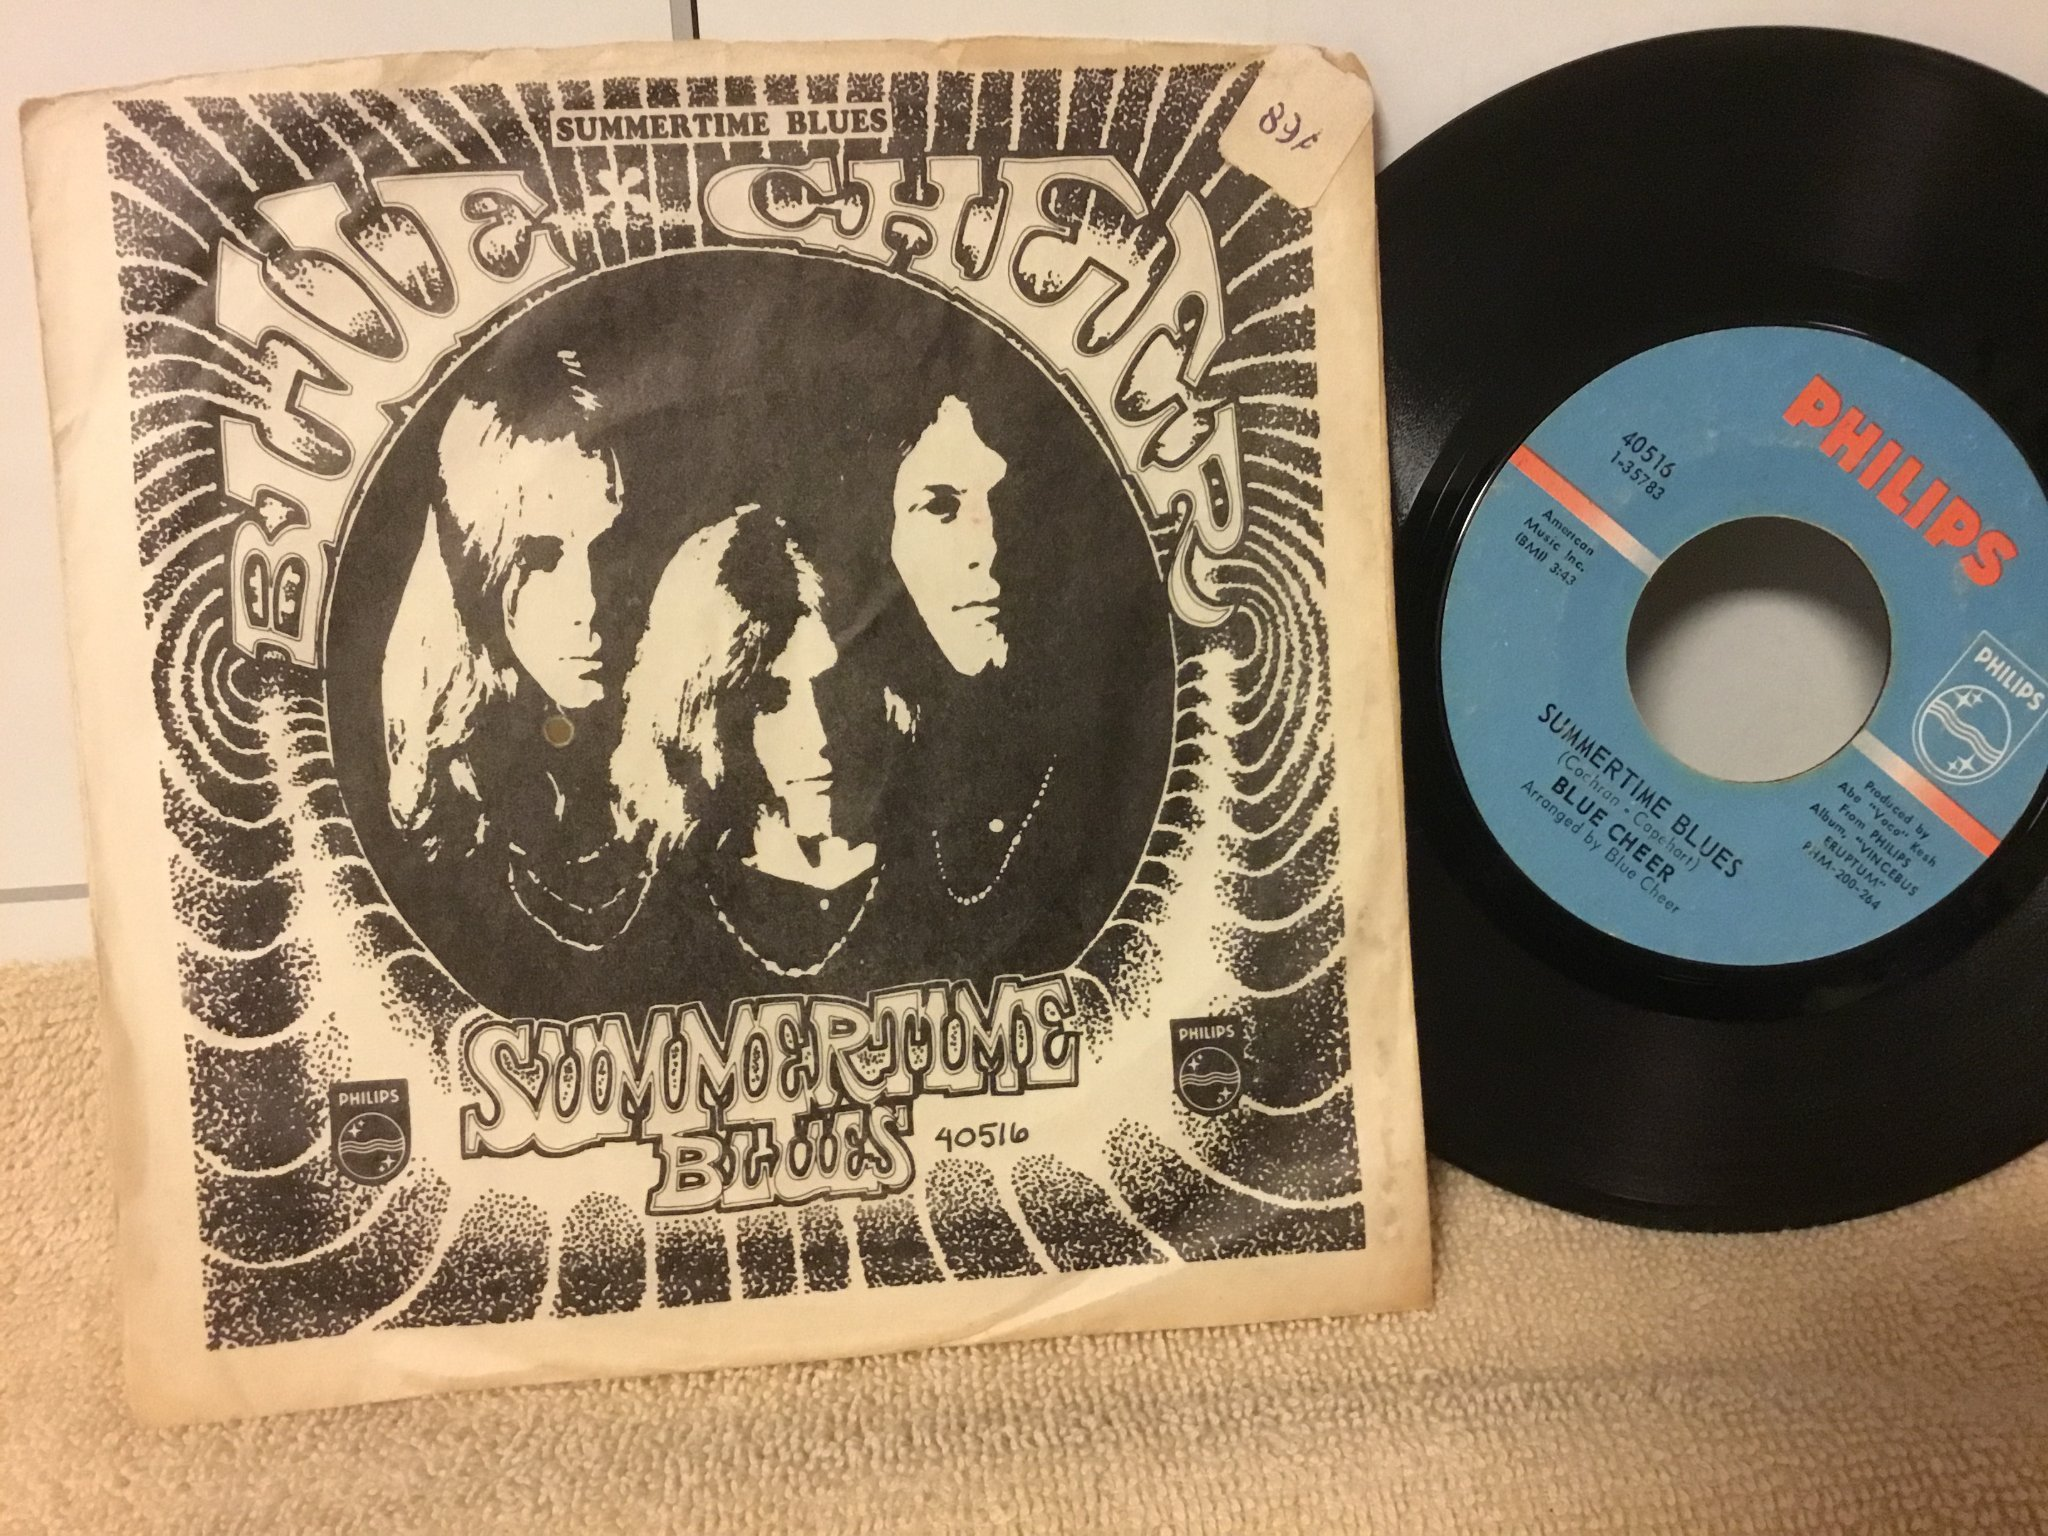 Blue Cheer ,,Summertime Blues / Out of focus ))) us single